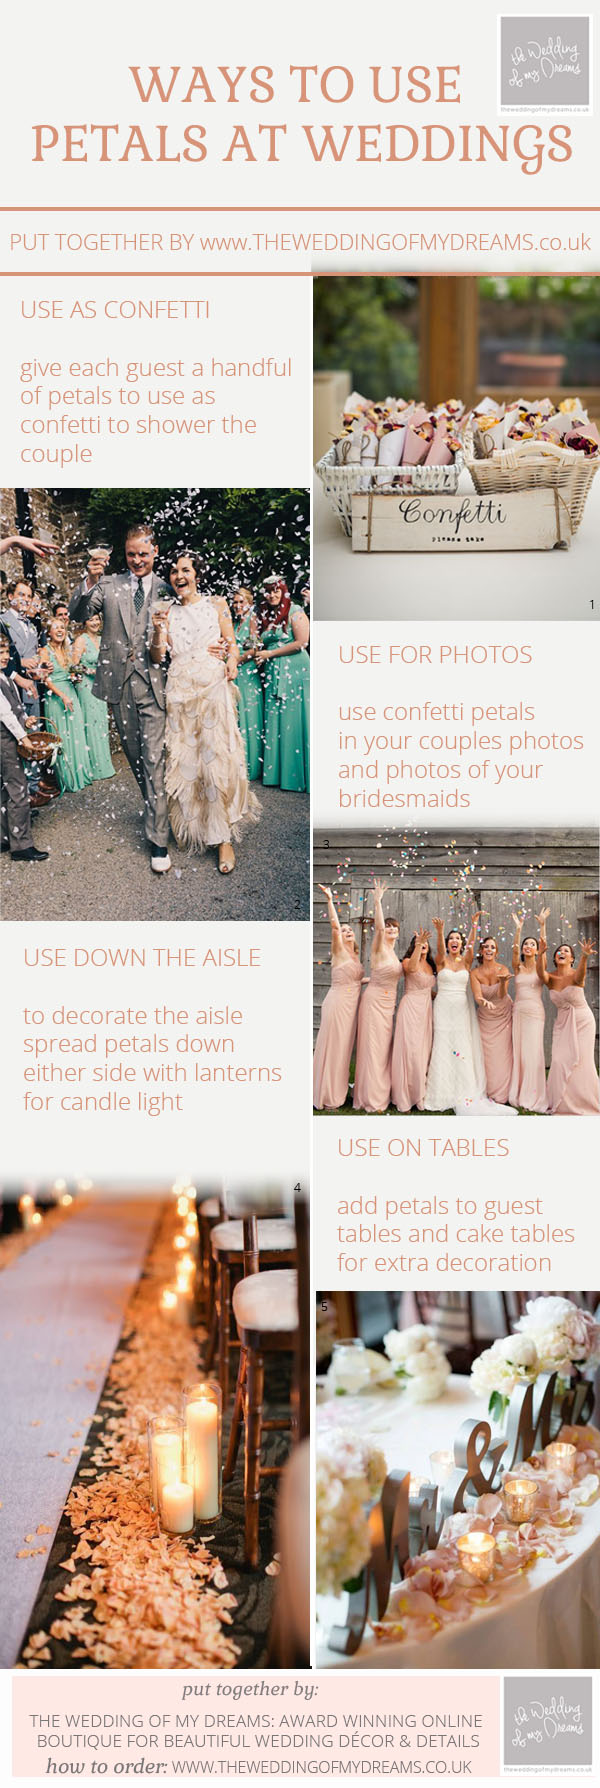 ways to use petals at your weddings - confetti petals petals in photos petals for wedding tables by @theweddingomd